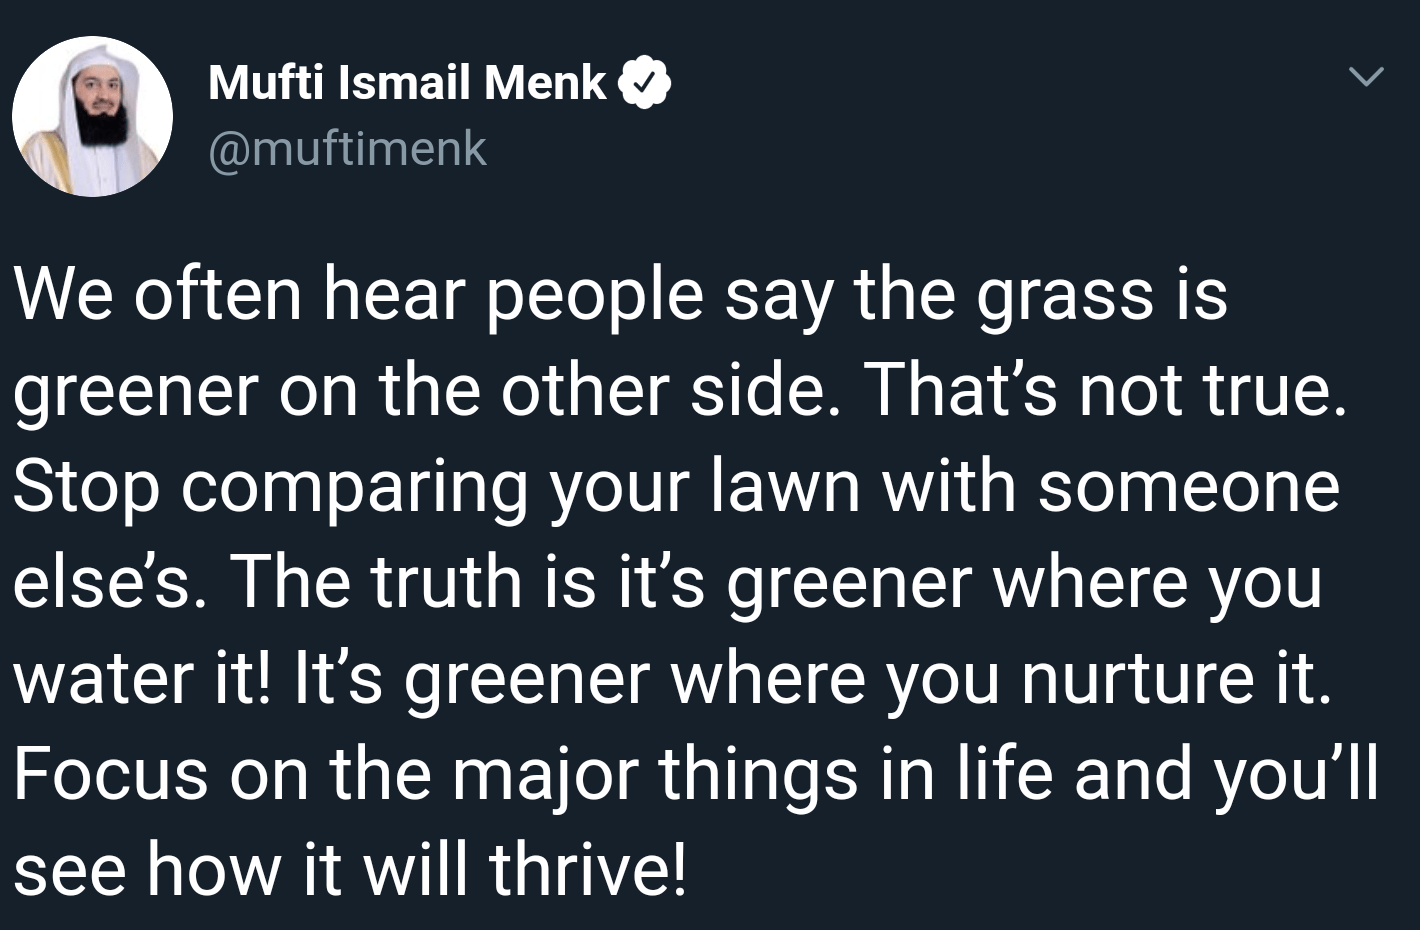 [Image] Take care of your lawn.